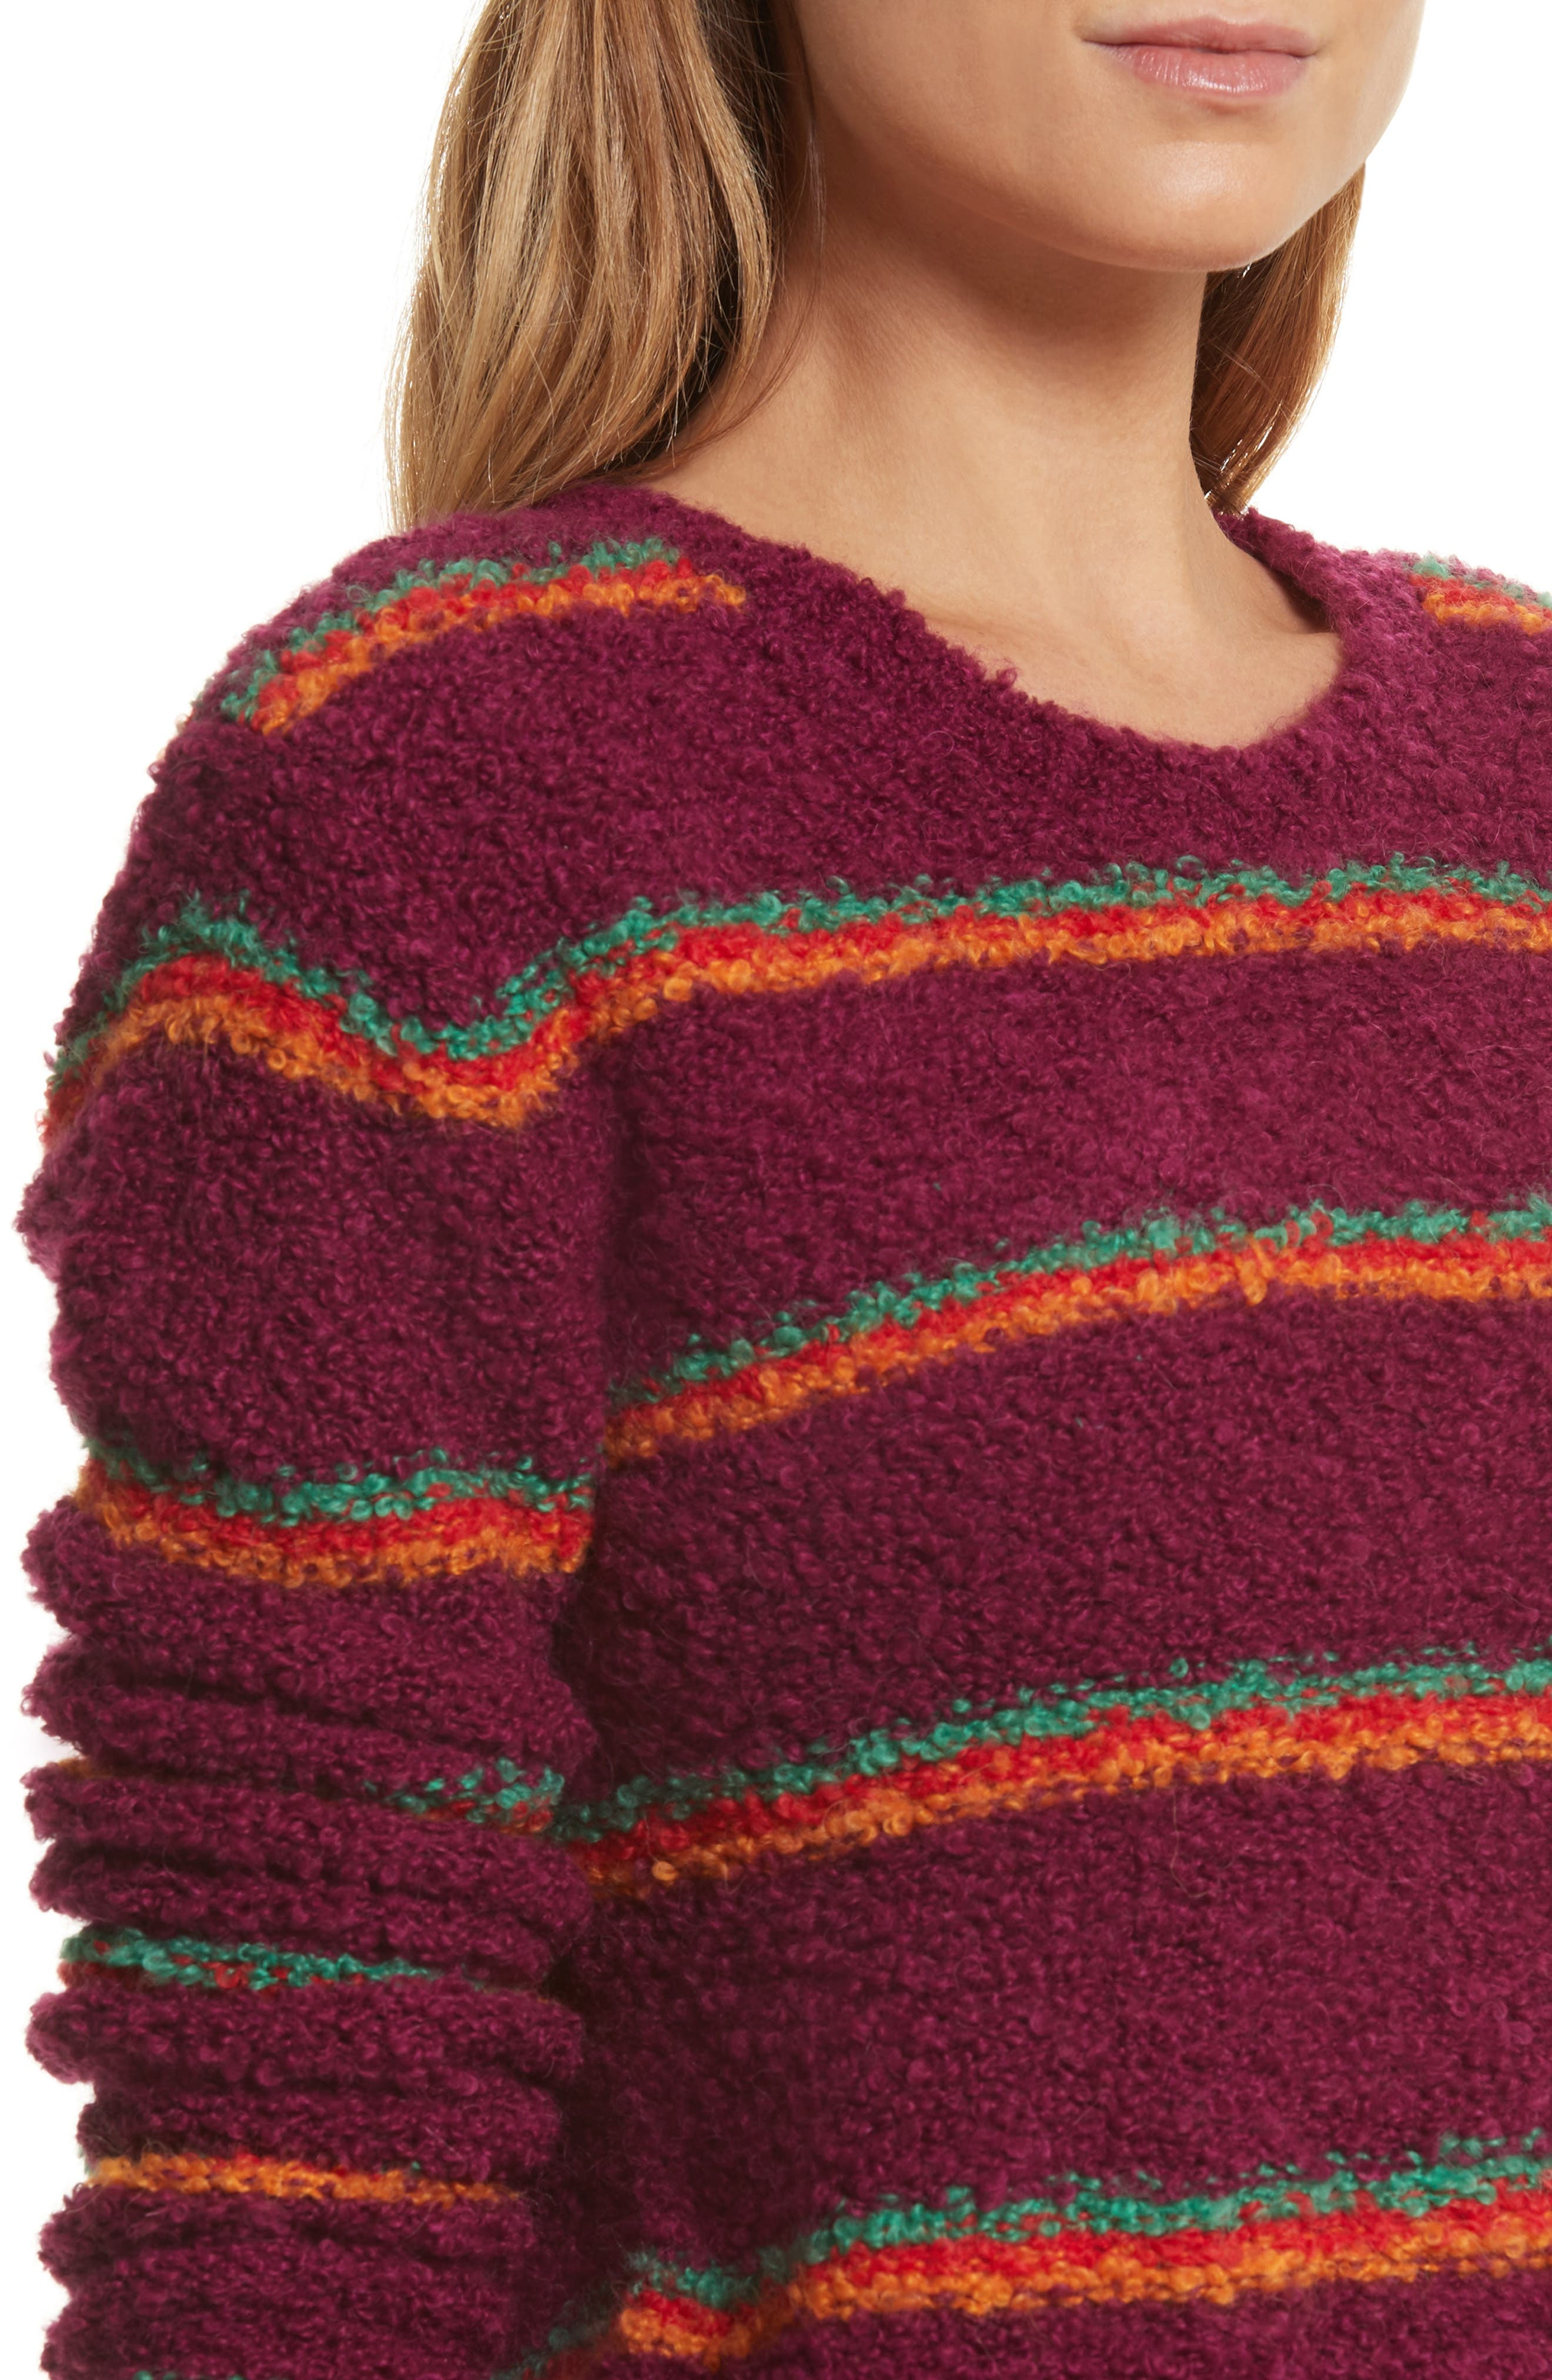 Best Day Ever Sweater,                             Alternate thumbnail 12, color,